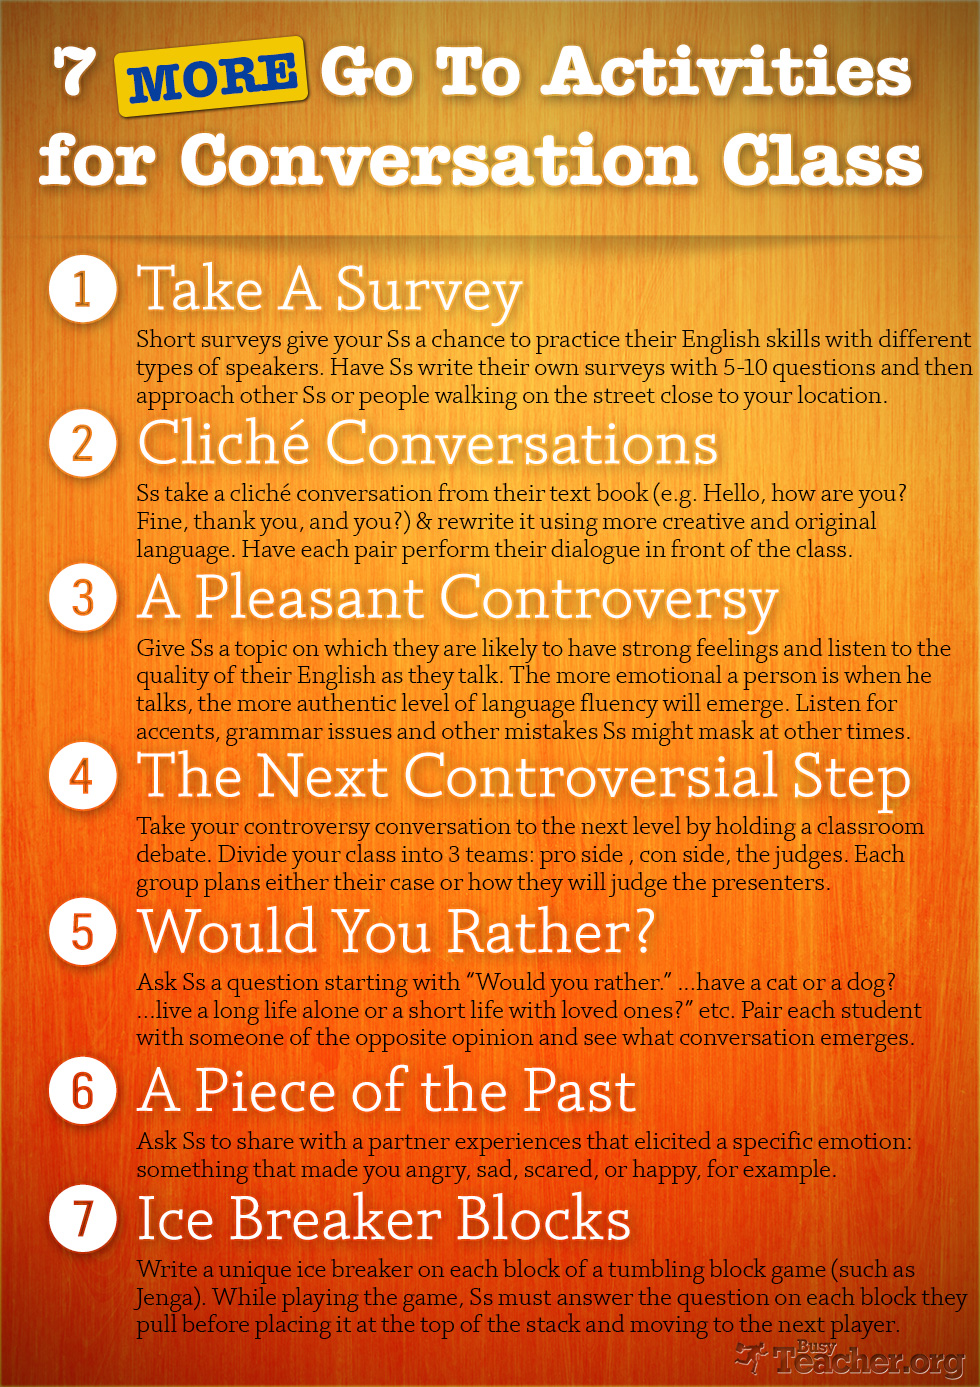 7 More Go To Activities for Conversation Class: Poster